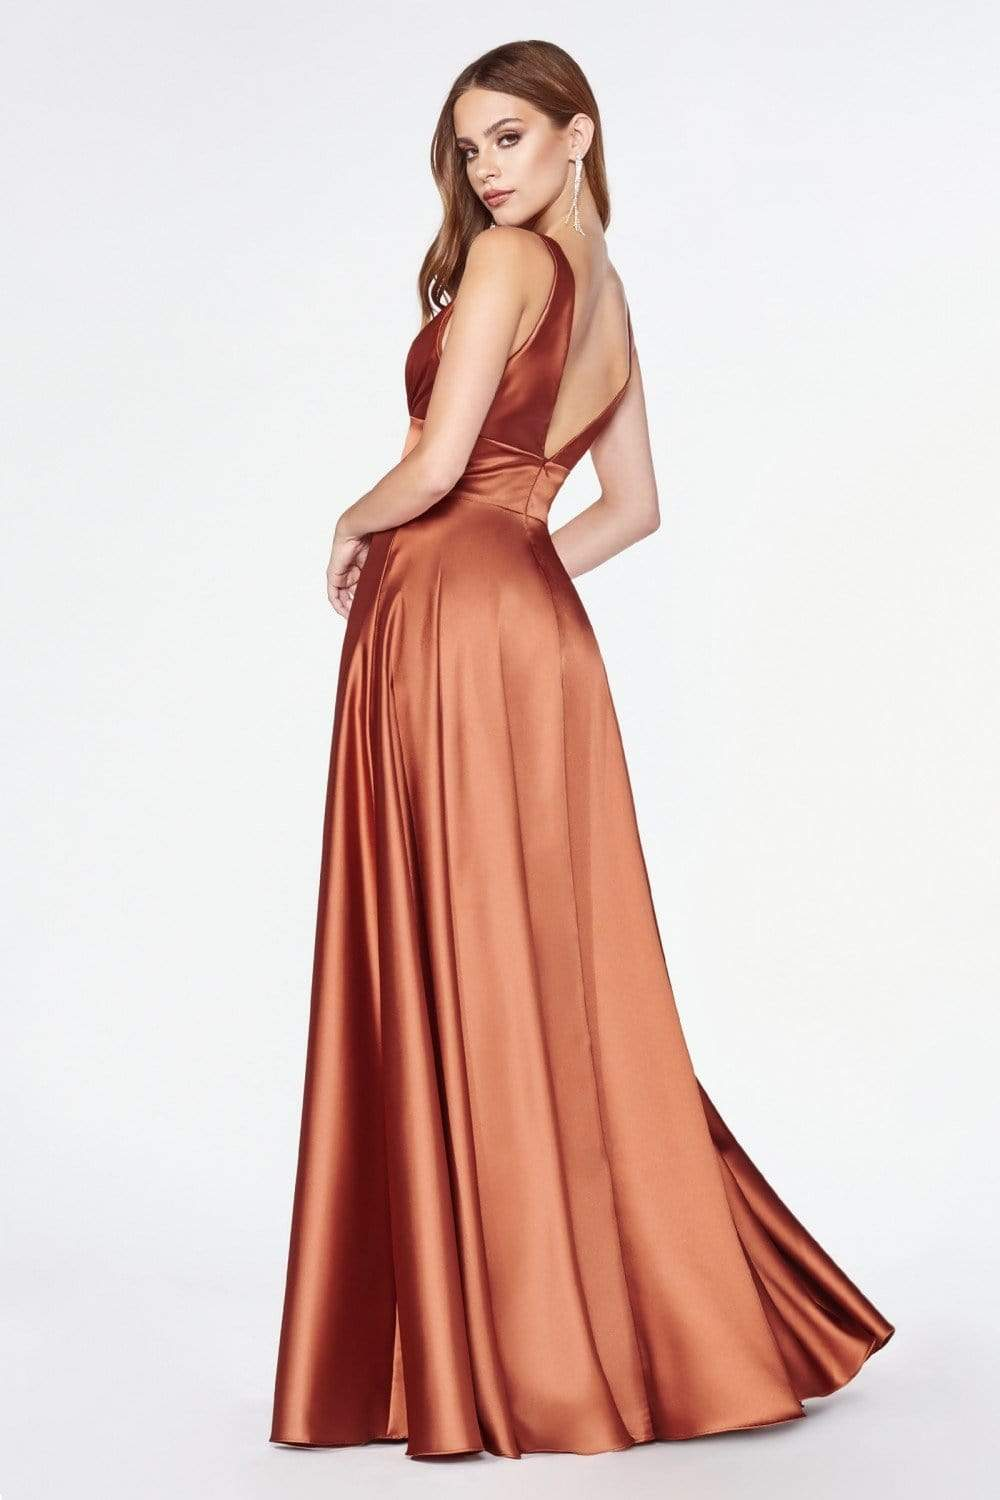 Cinderella Divine - 7469 Sleeveless V Neck Flowing Satin Gown in Orange